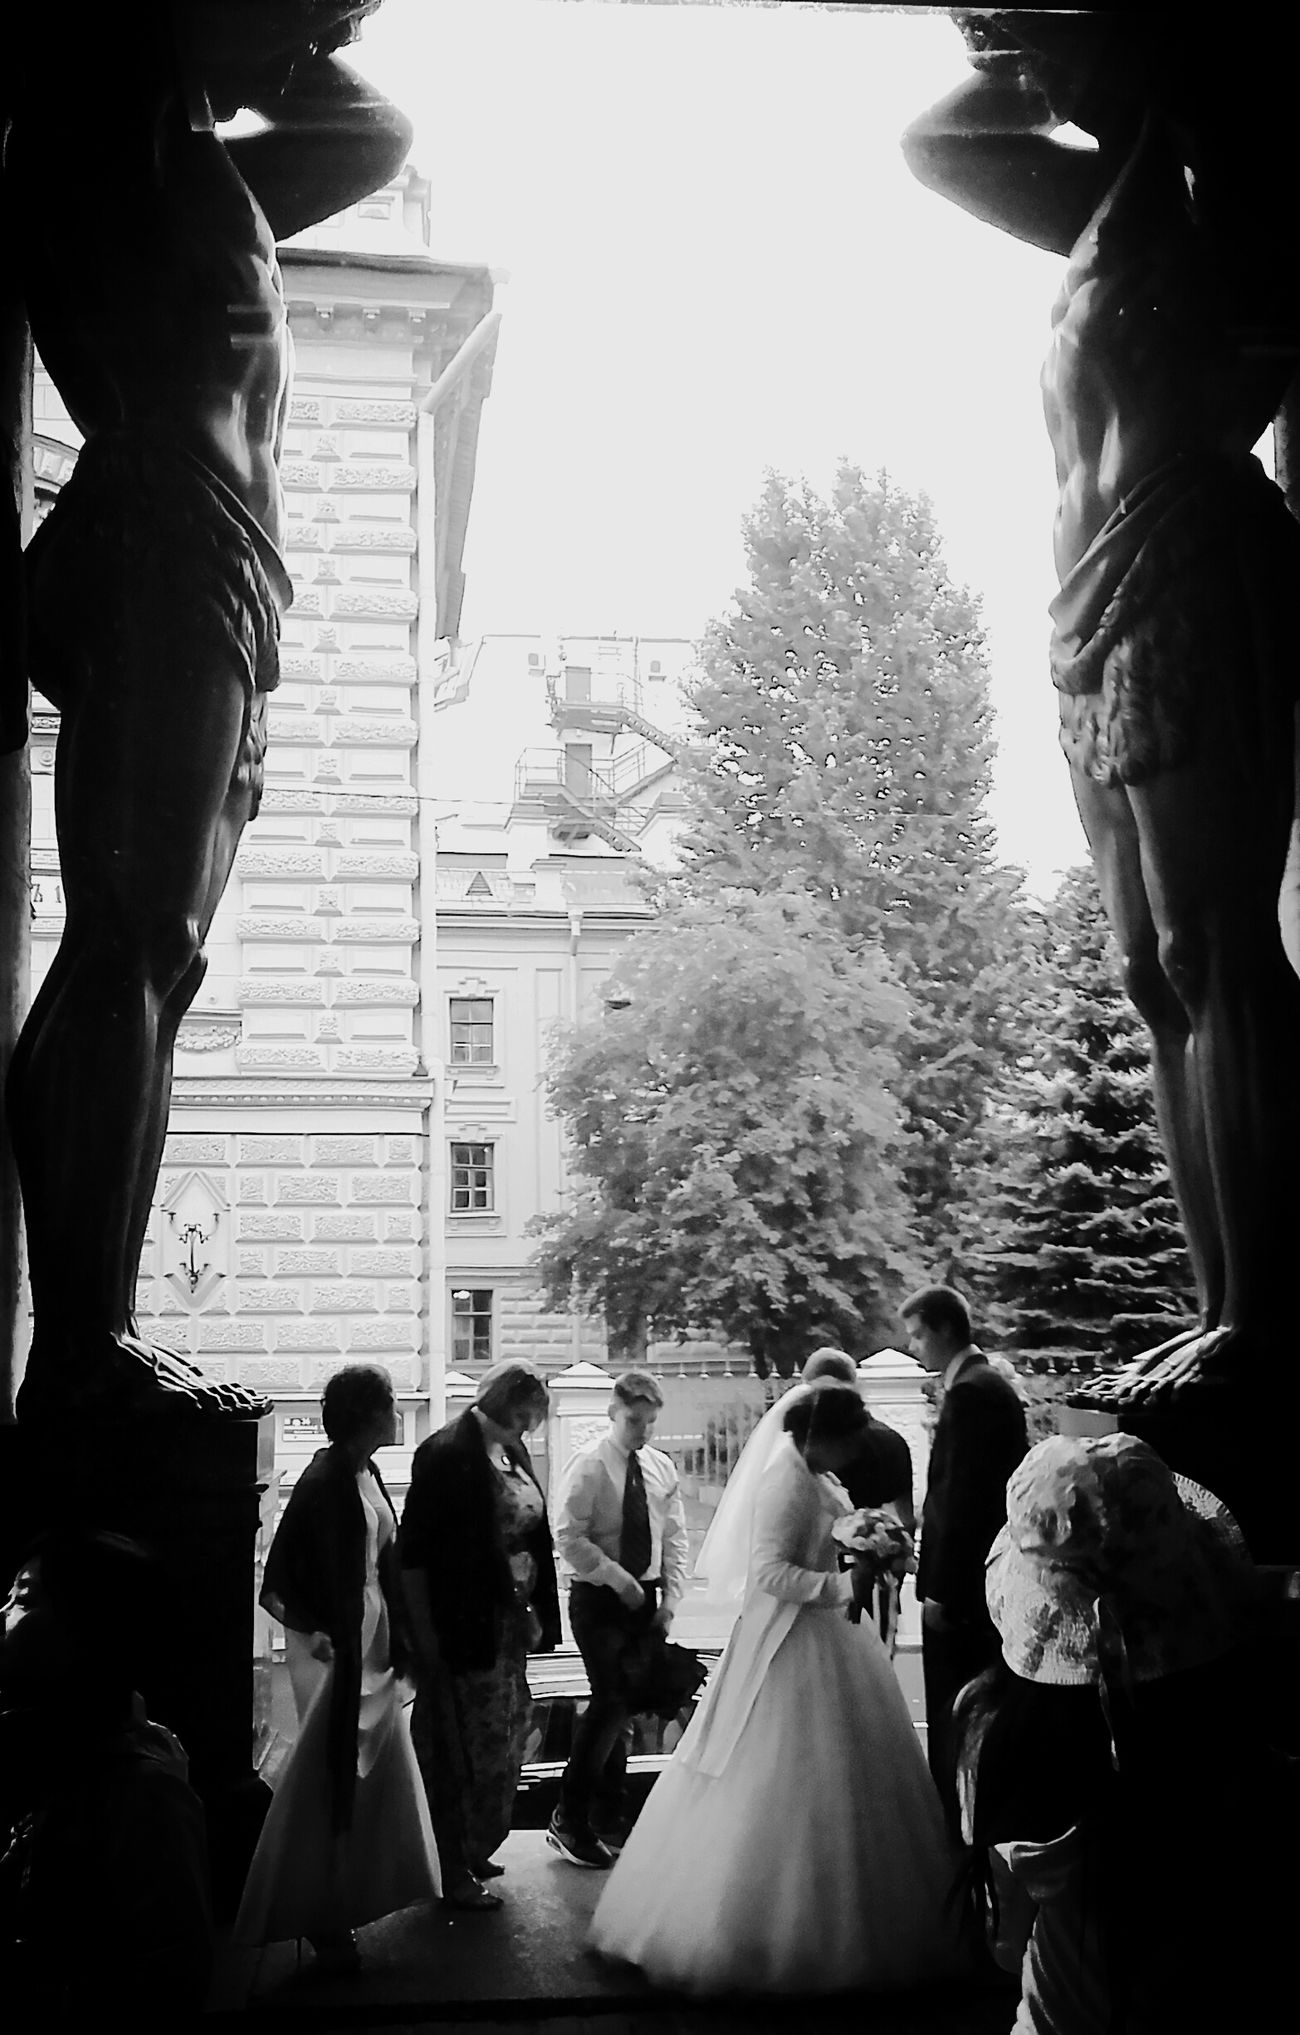 Marriage  Wedding Giants Statues Sanpietroburgo Ermitage